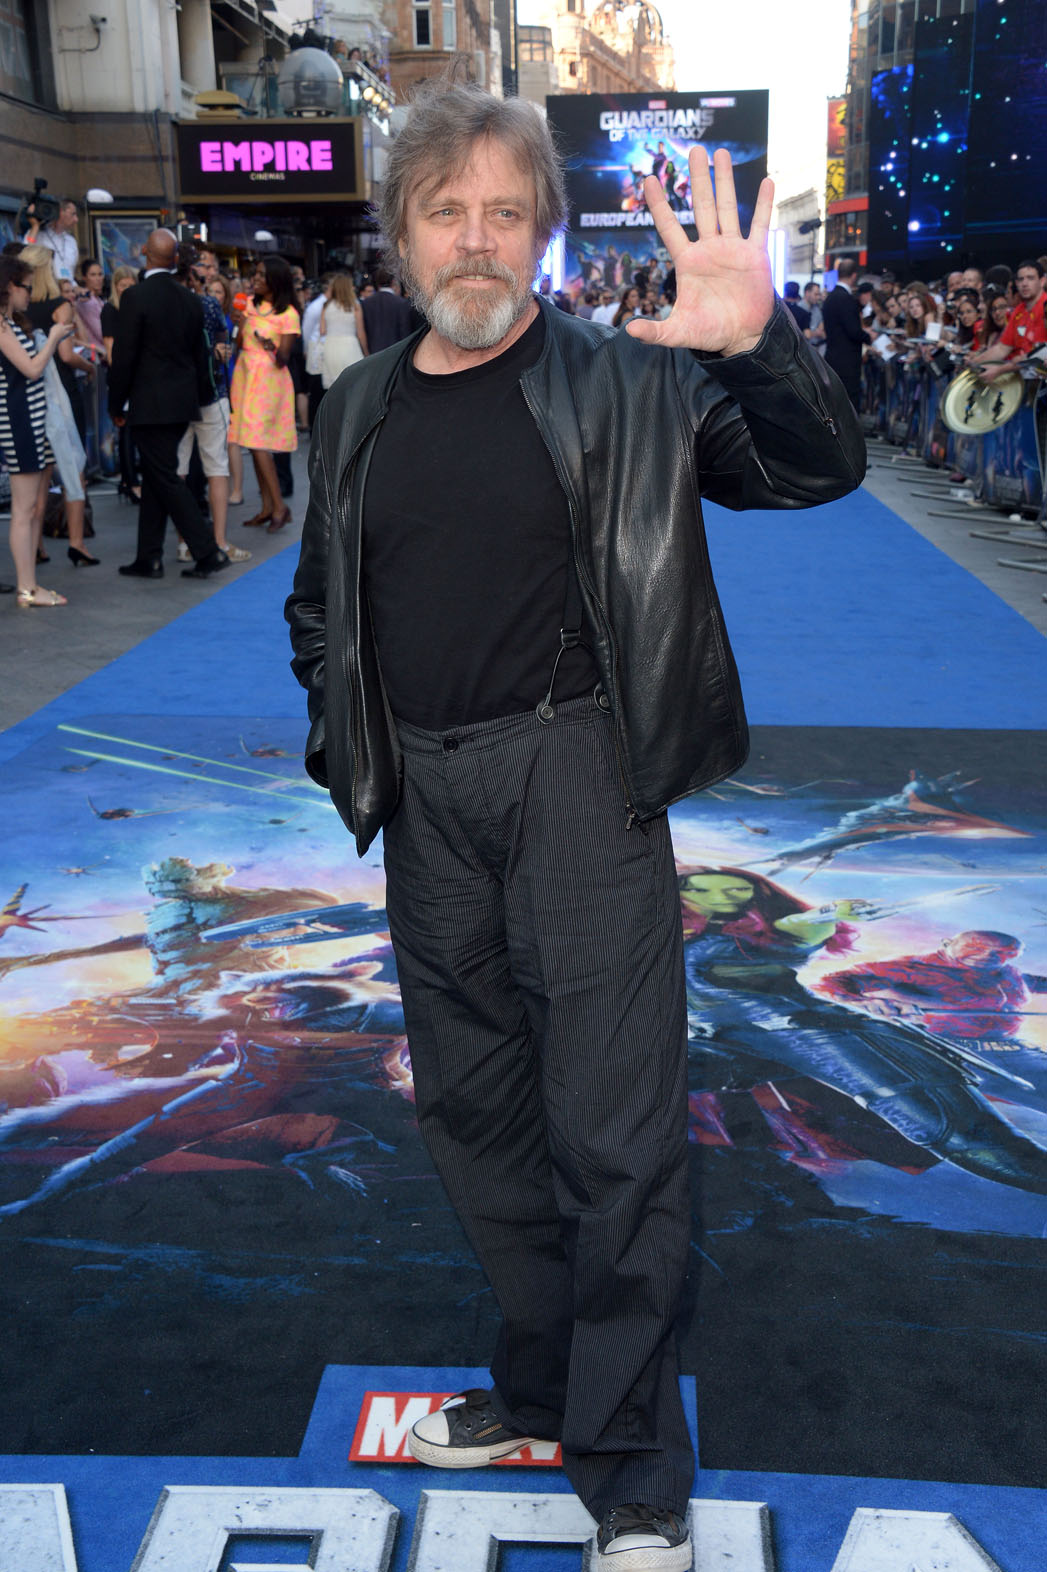 Mark Hamill Guardians Premiere - P 2014